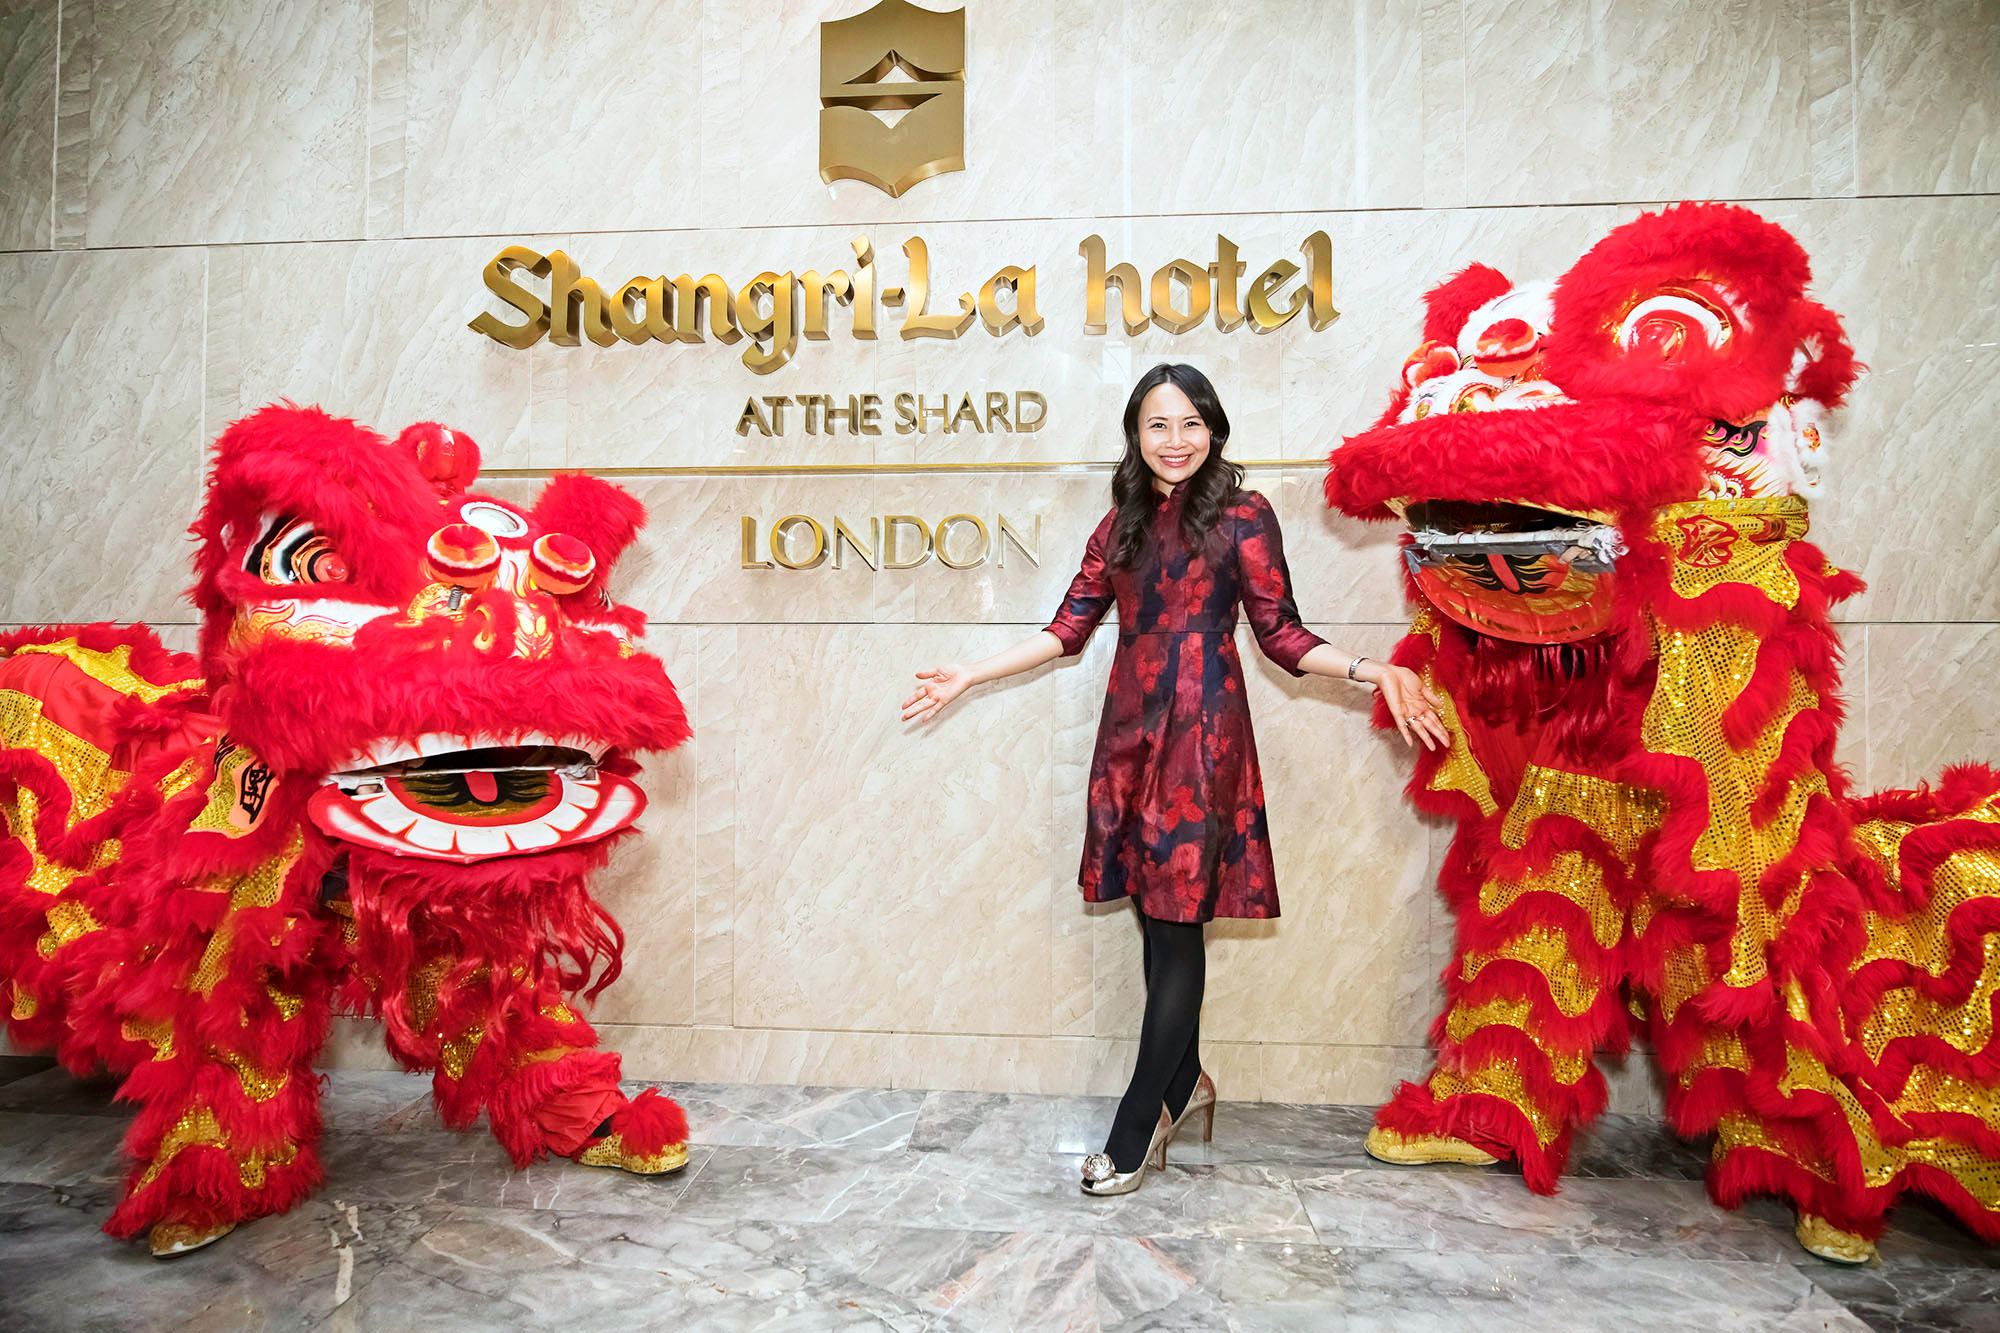 A Stylish Chinese New Year At The Shard With Chef Ching He Huang